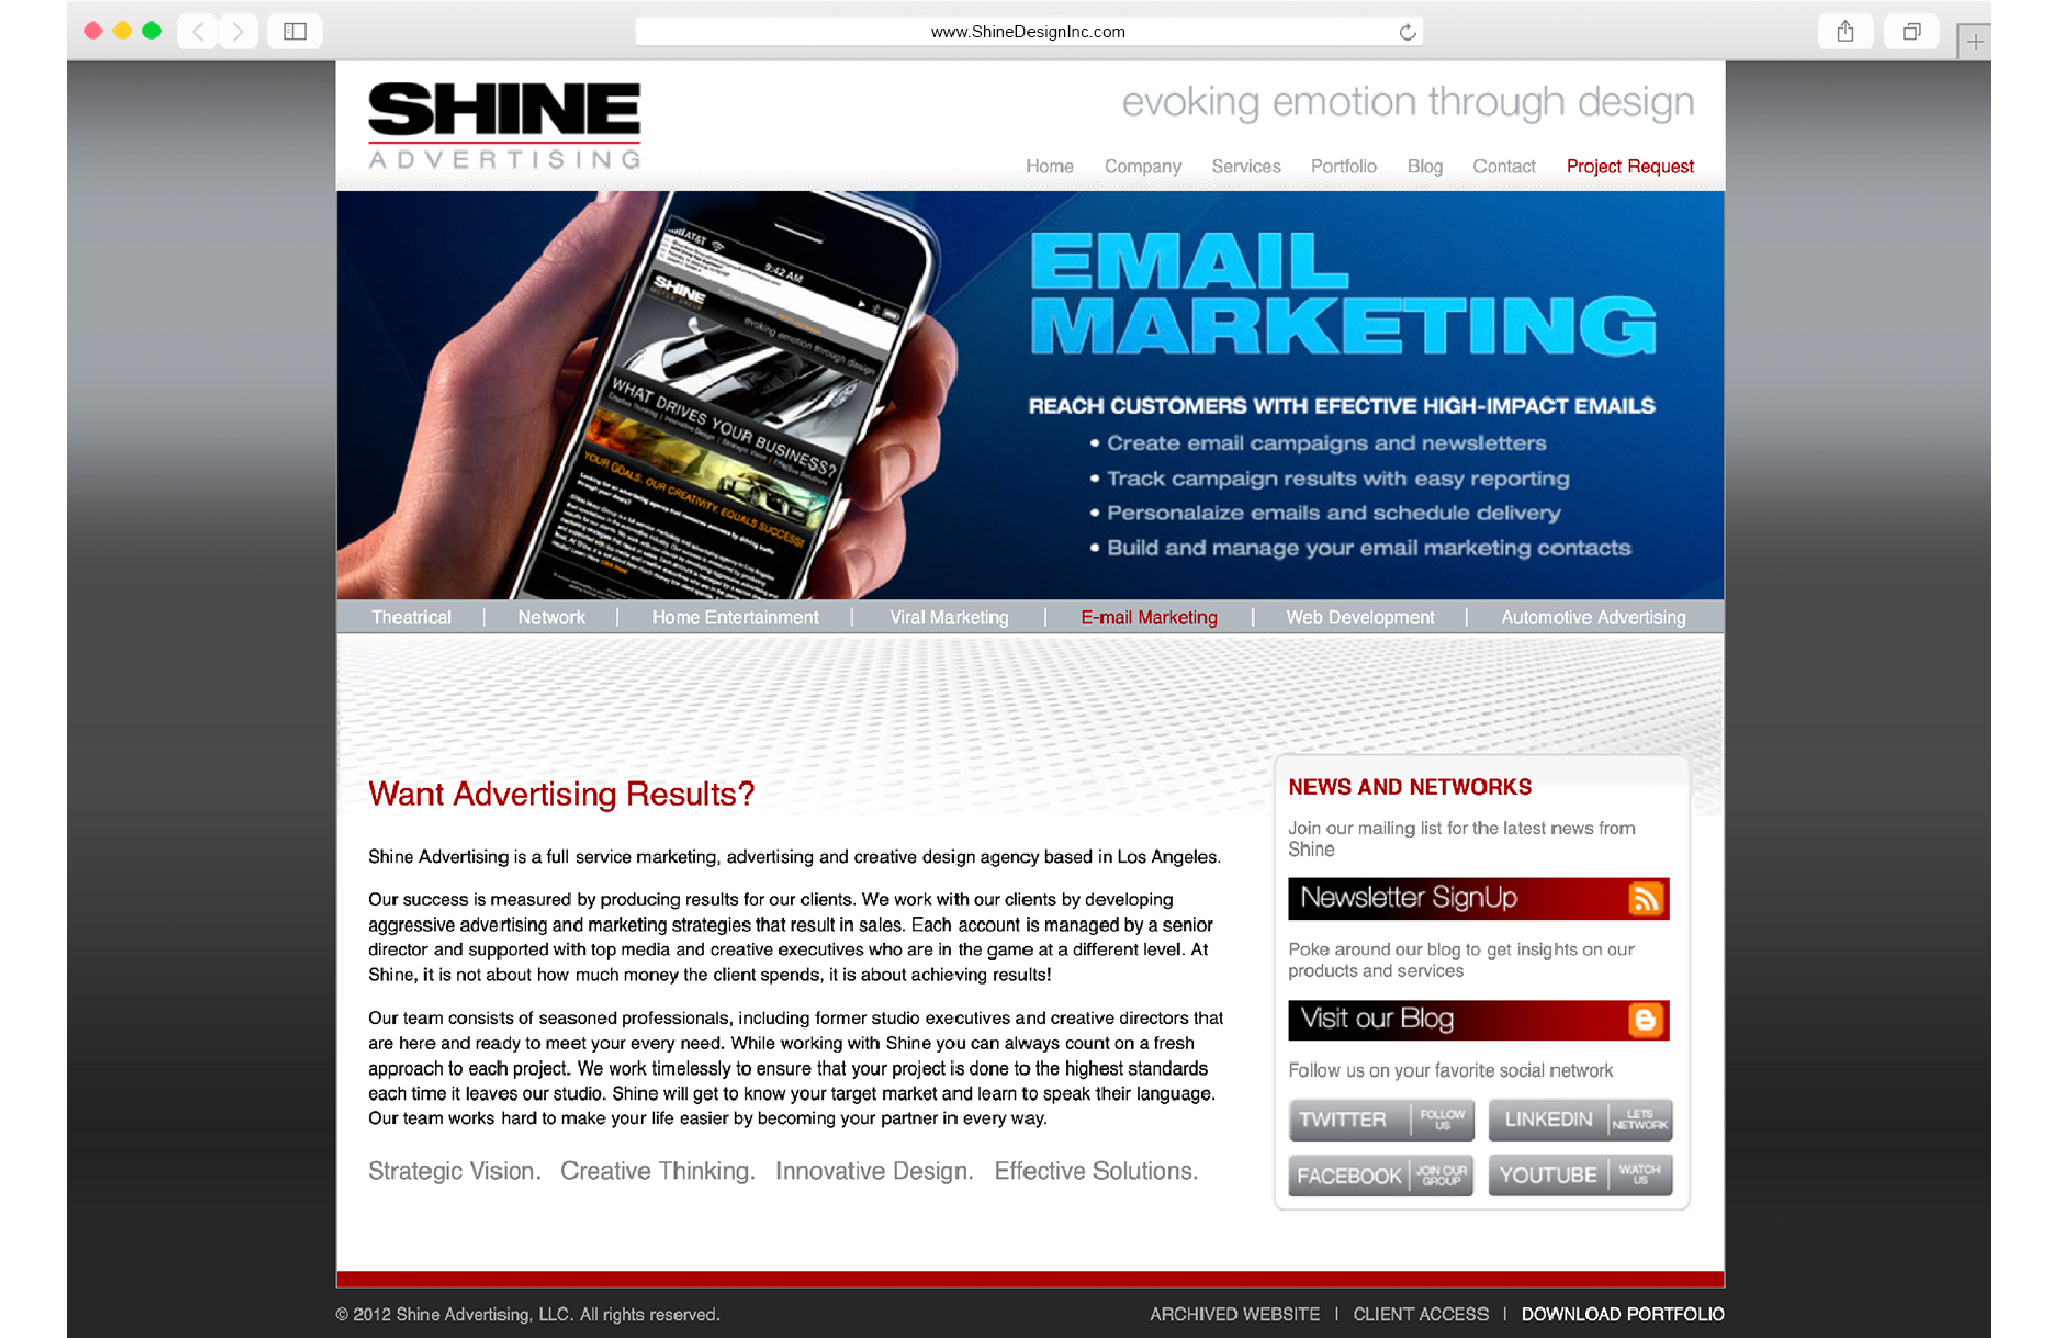 Shine Design Inc Archived Website 2